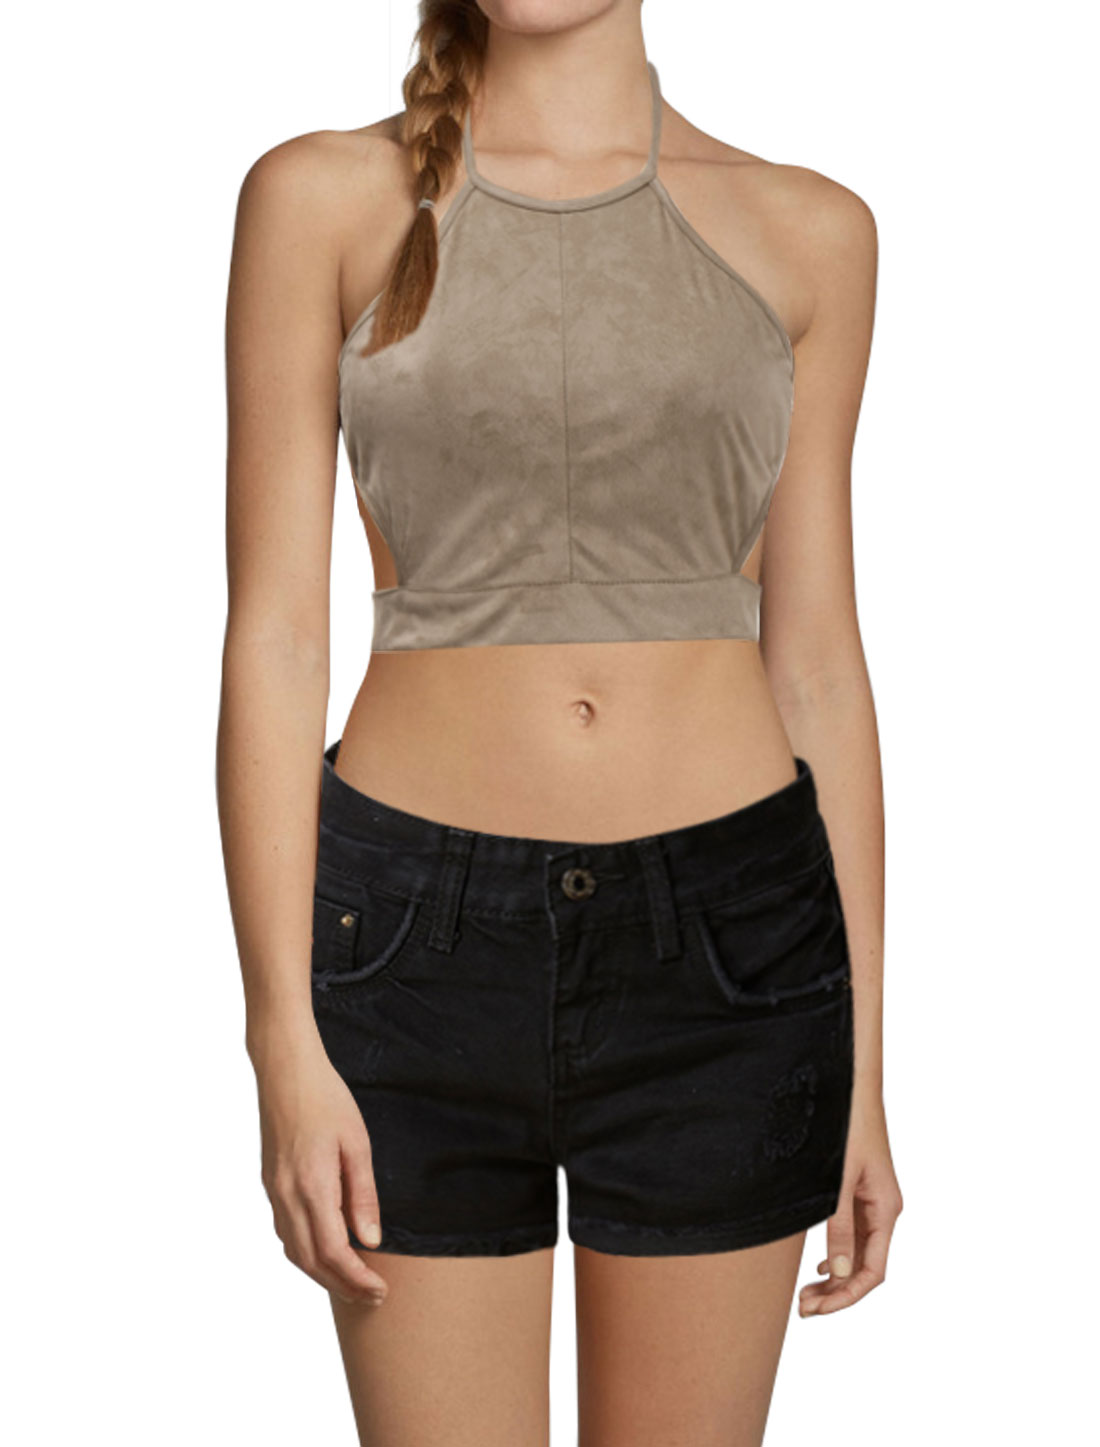 Women Zip Up Open Back Cut Out Sides Halter Neck Crop Top Brown L